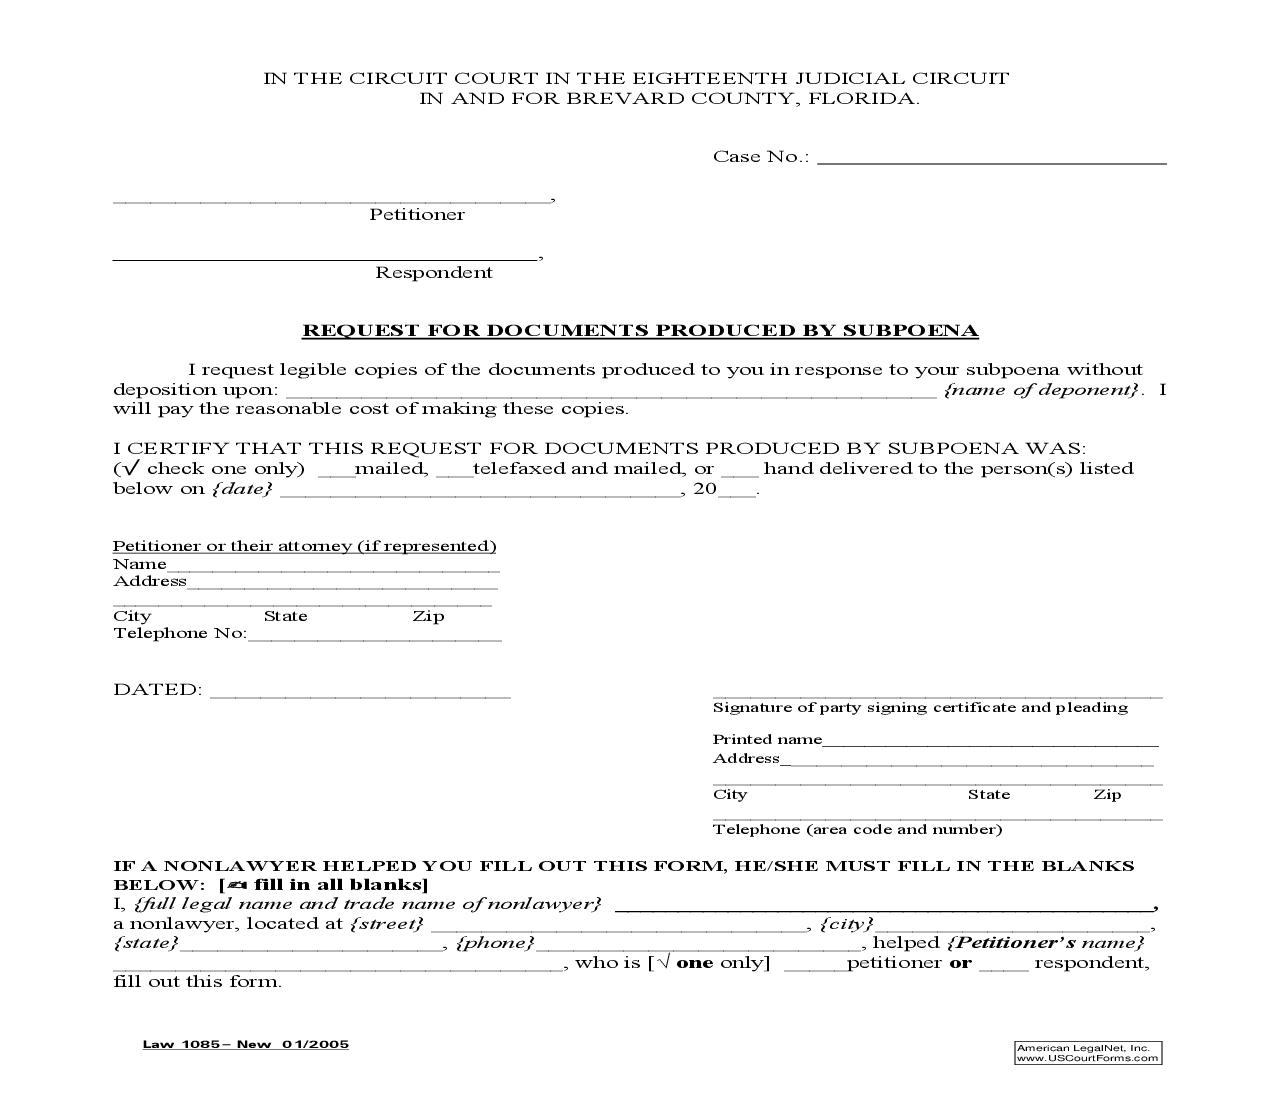 Request For Documents Produced By Supoena {Law 1085} | Pdf Fpdf Doc Docx | Florida